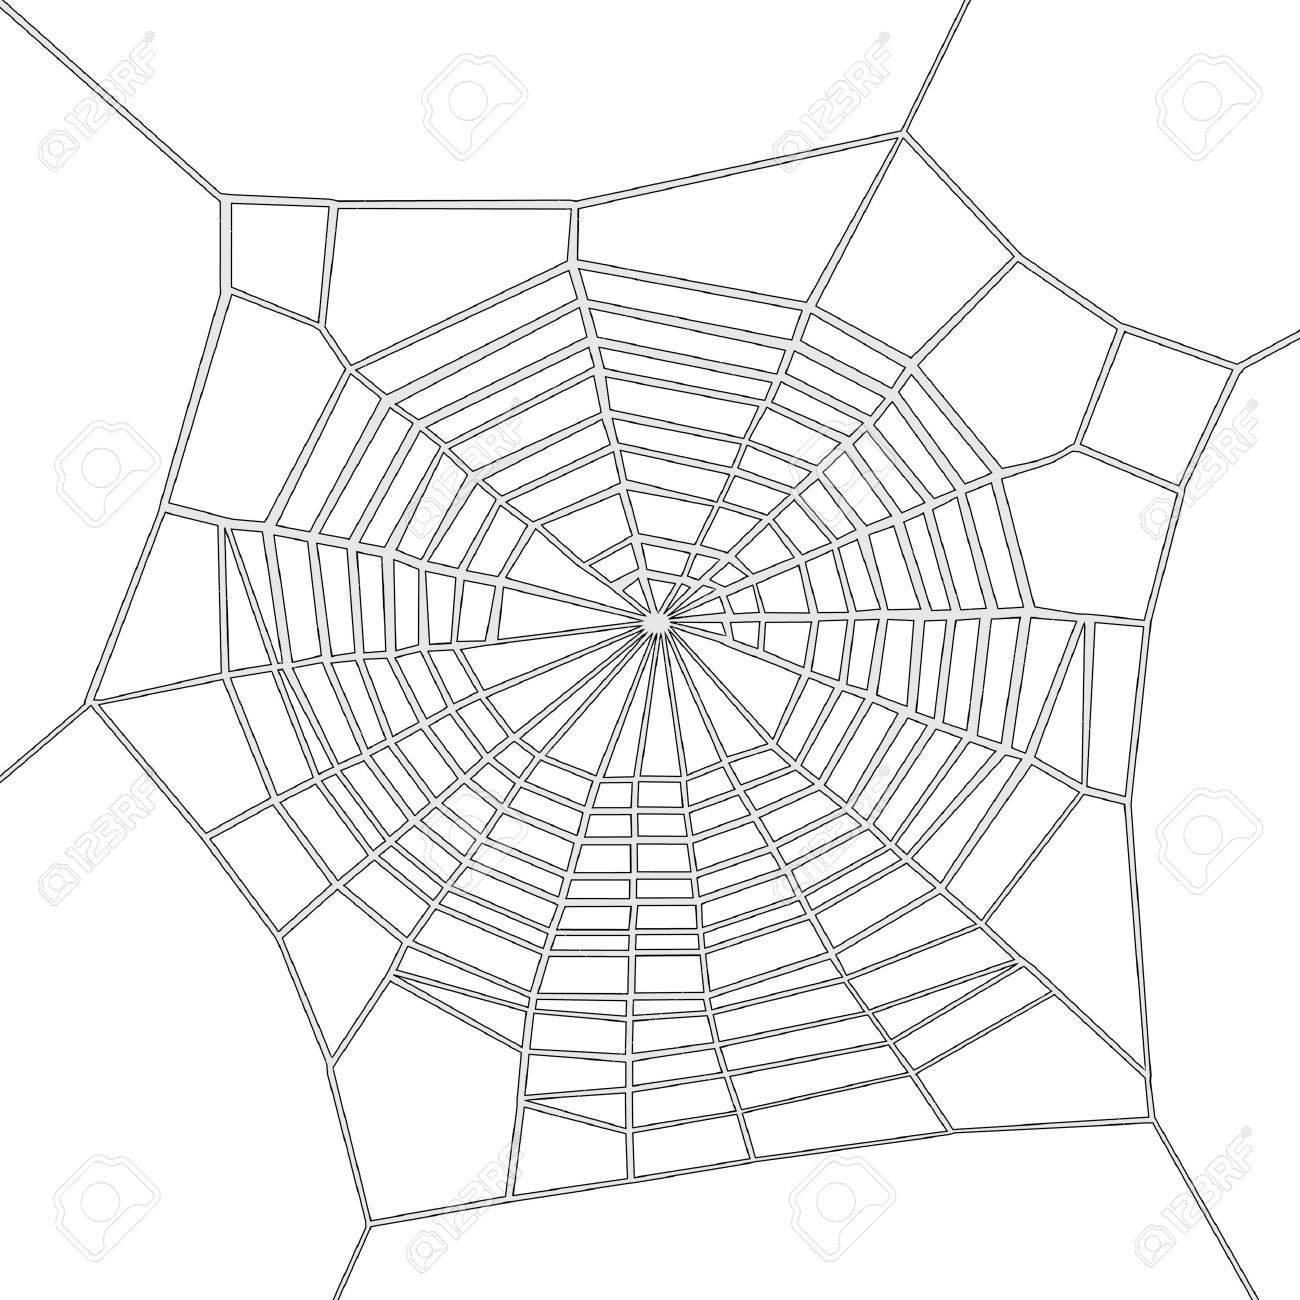 1300x1300 Cartoon Image Of Spider Web Stock Photo, Picture And Royalty Free